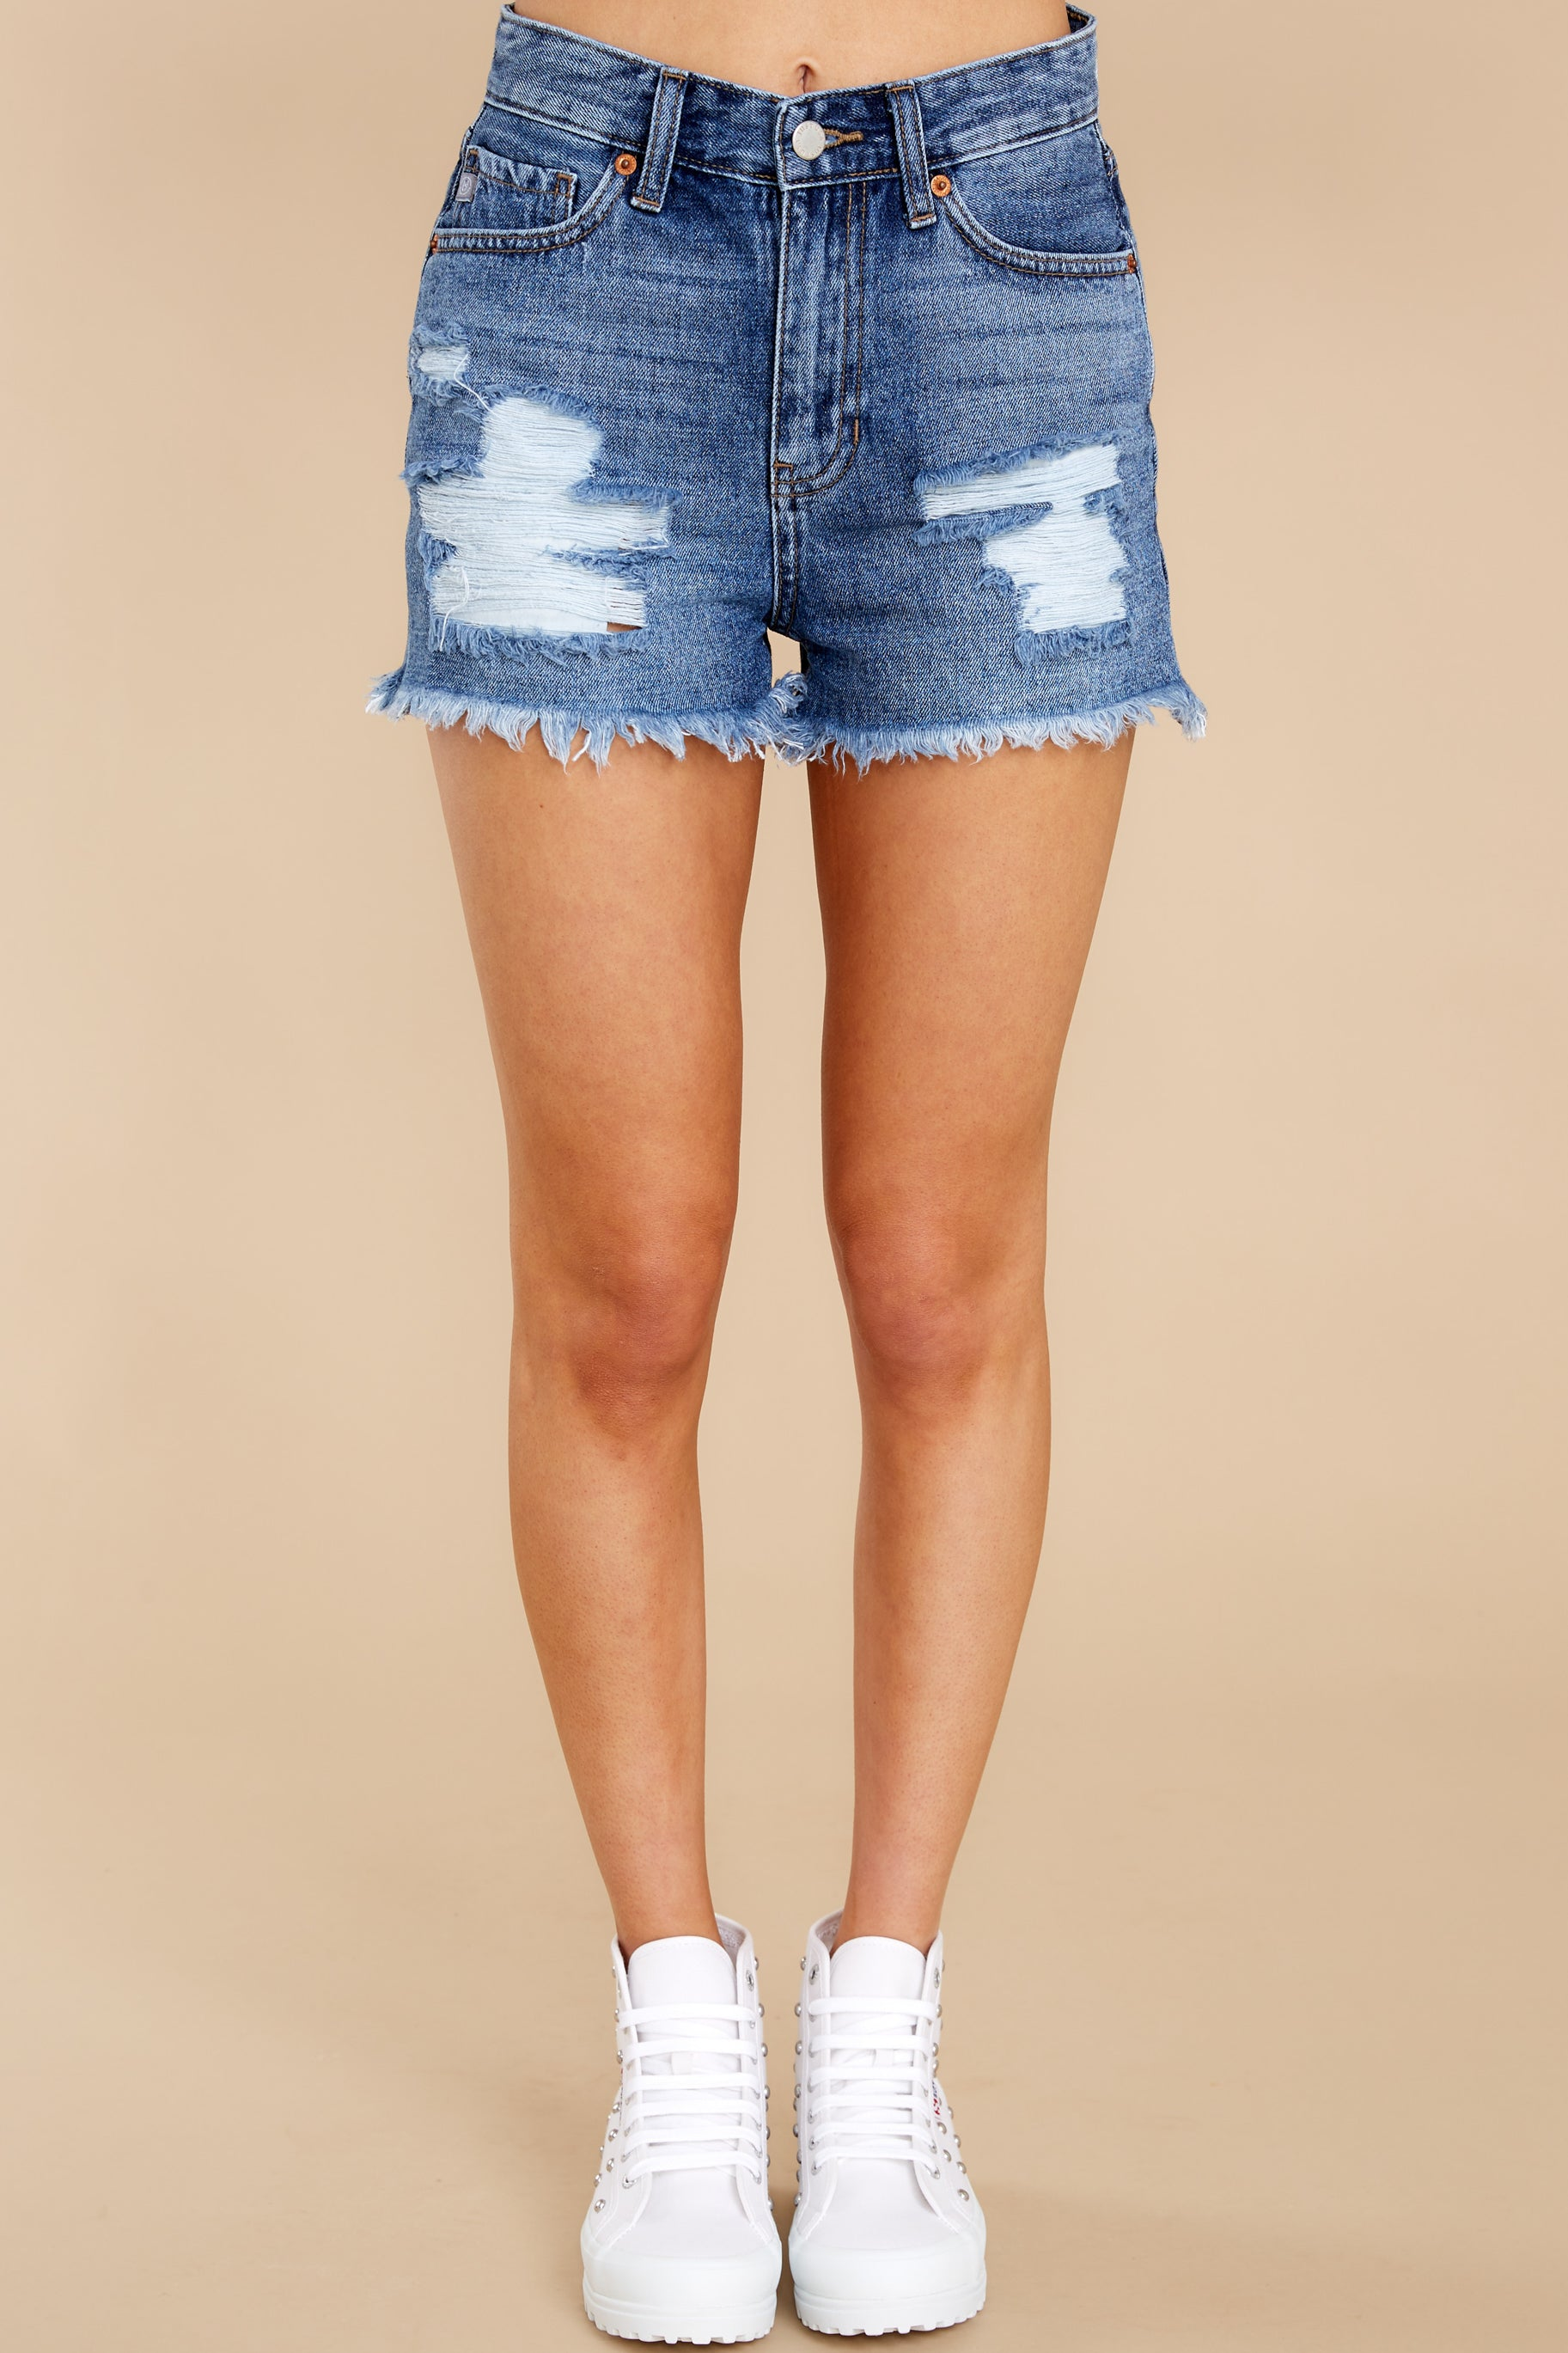 6 No Time To Waste Medium Wash Distressed Denim Shorts at reddress.com